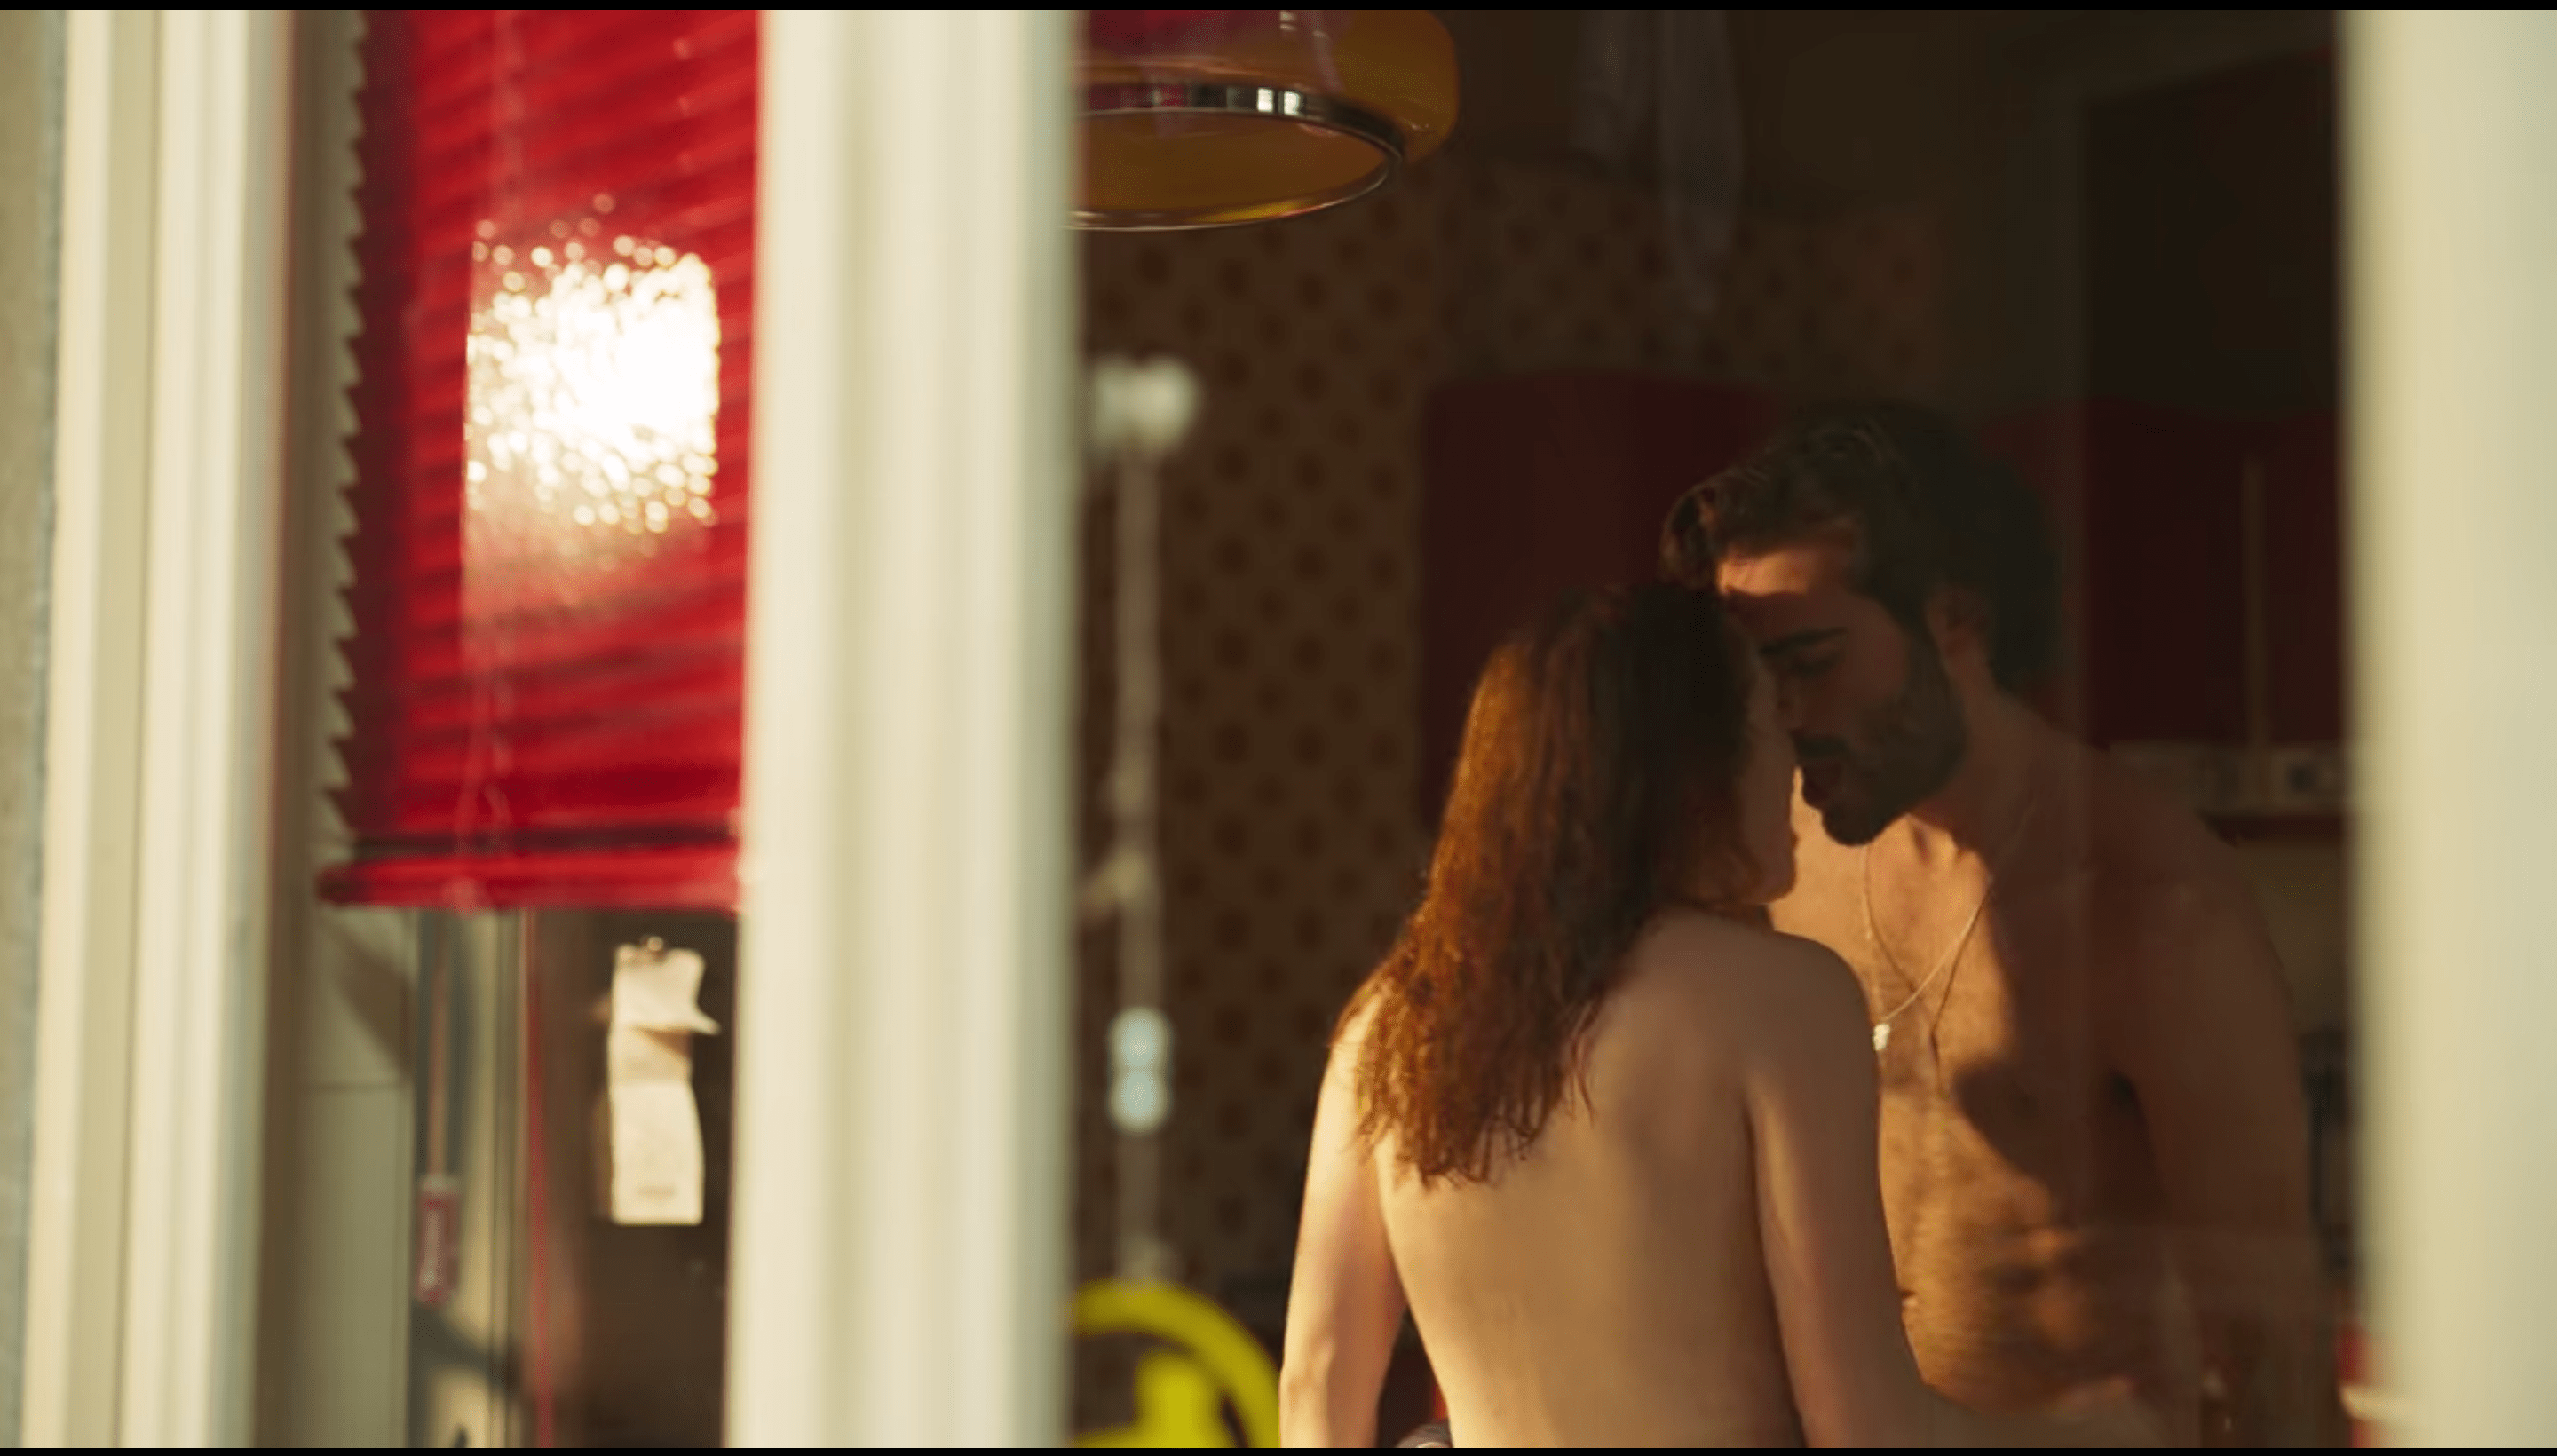 Valeria and Adrián, both topless, getting it on in their kitchen. Above them is a yellow light fixture. Behind them is a bright red slatted blind.